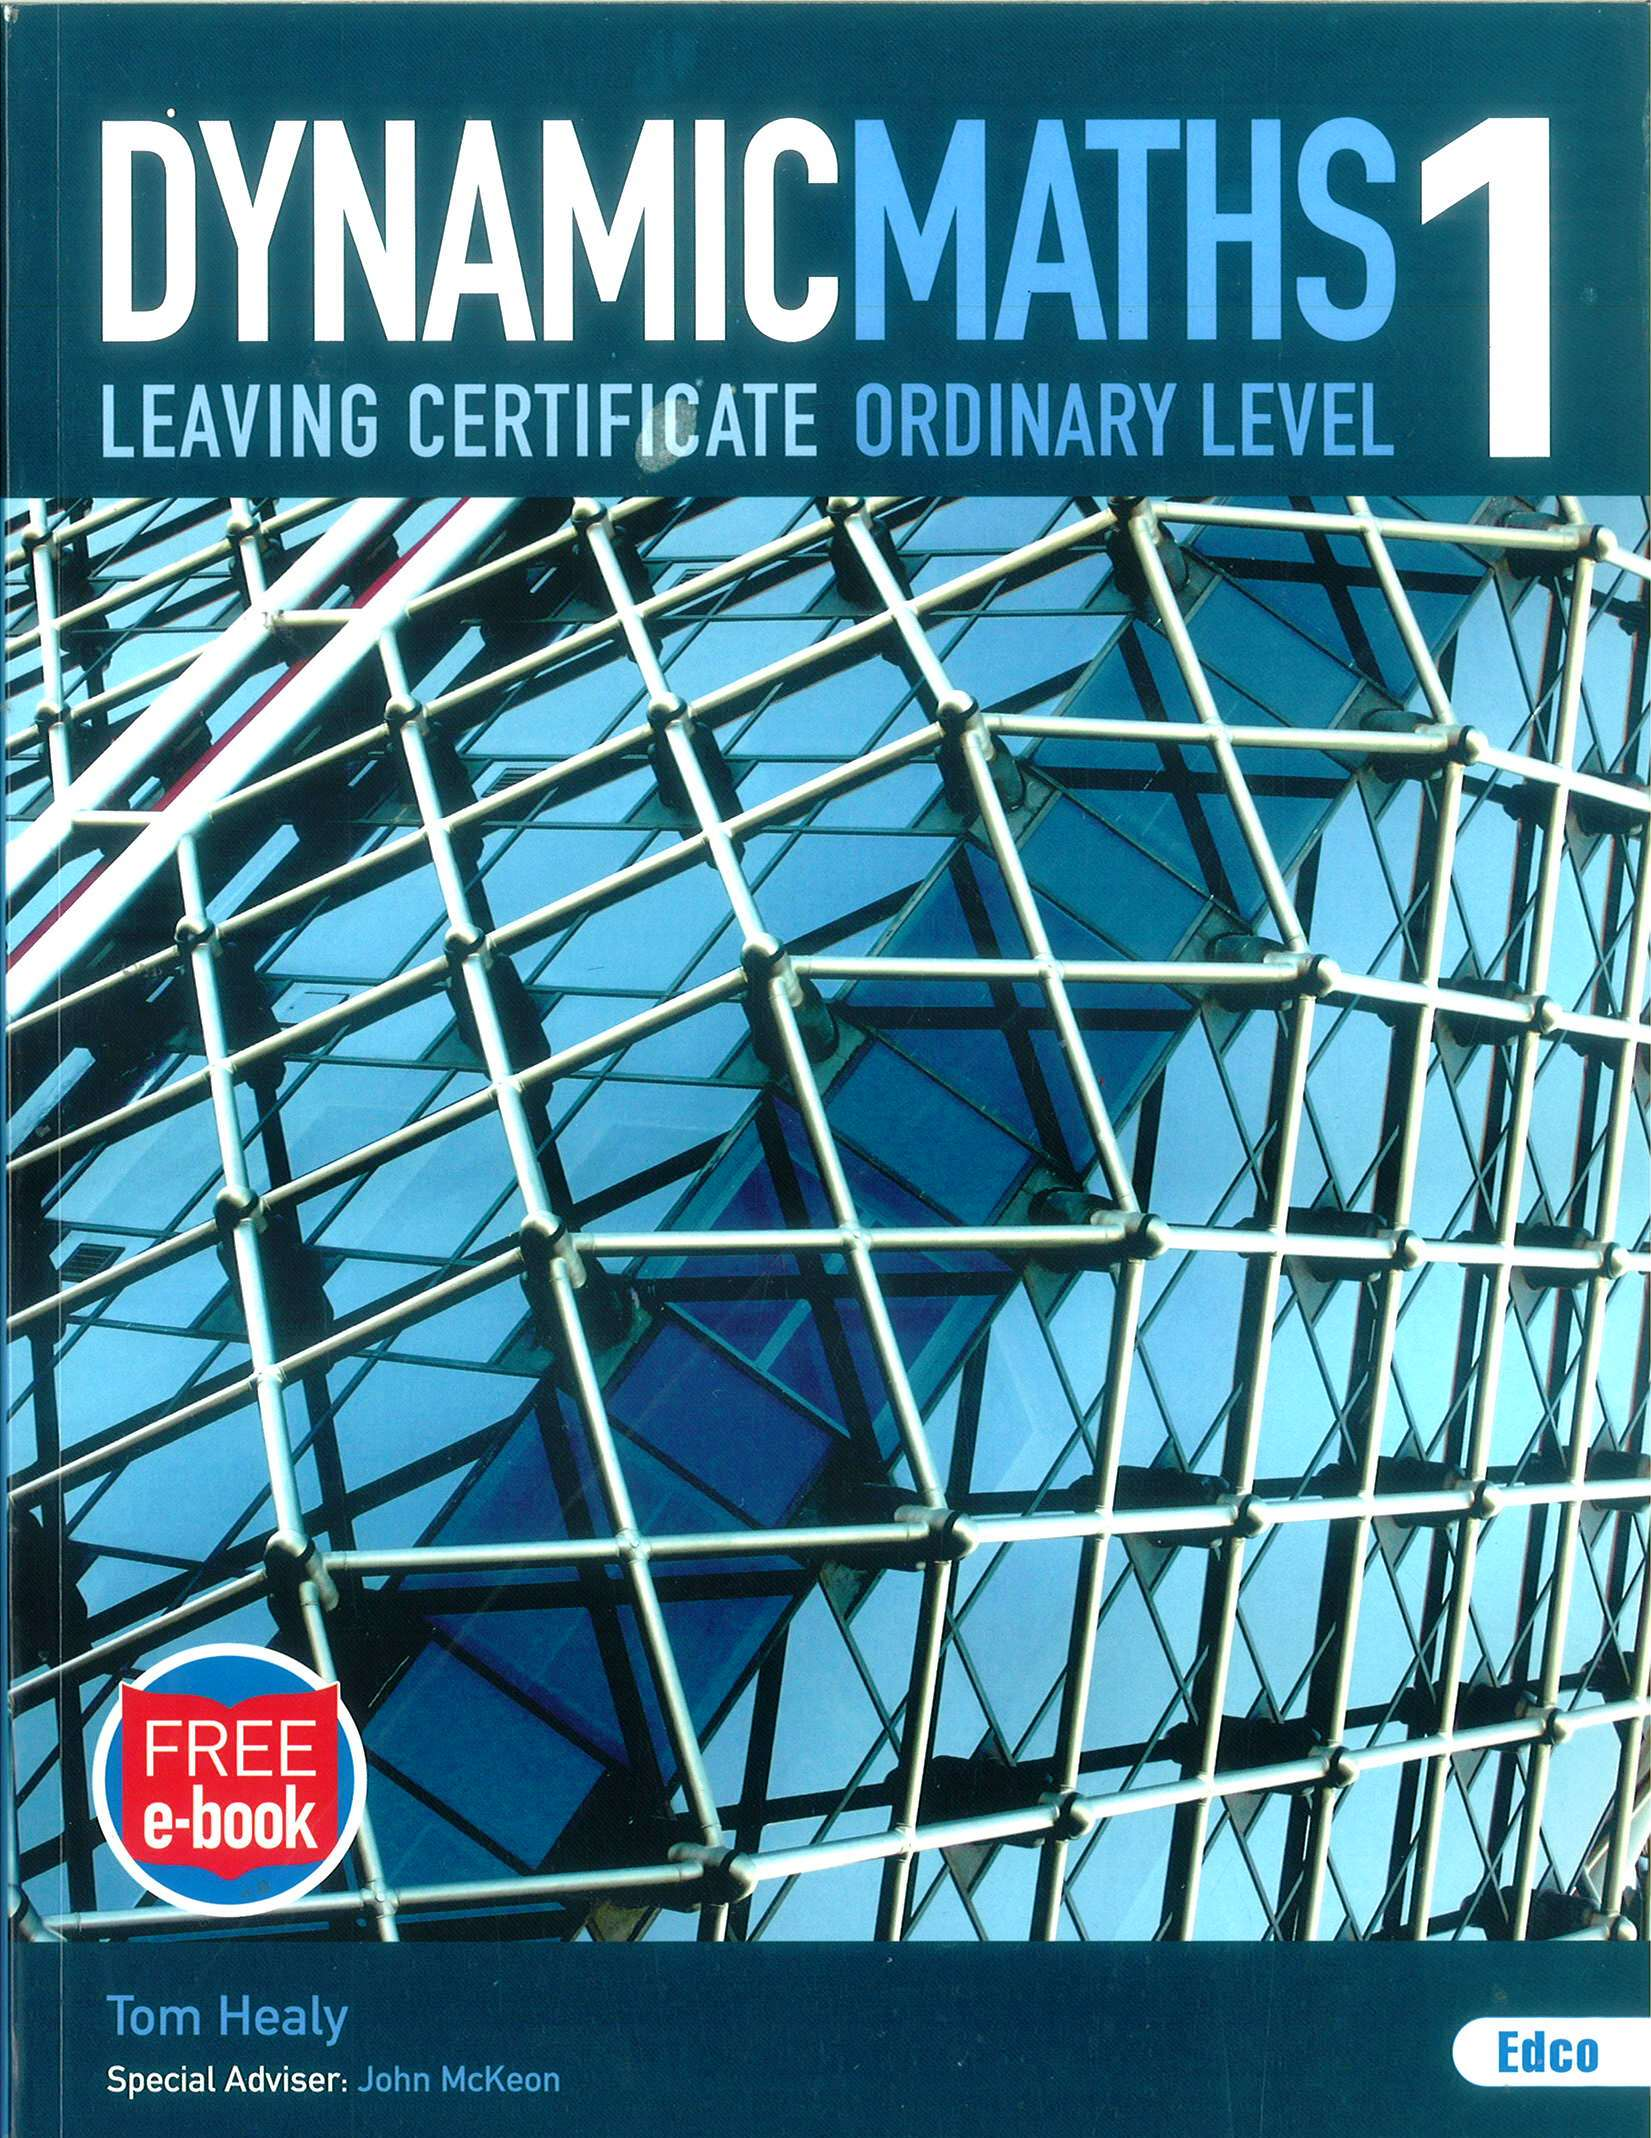 Dynamic Maths 1 - Leaving Certificate Ordinary Level - Includes Free ...